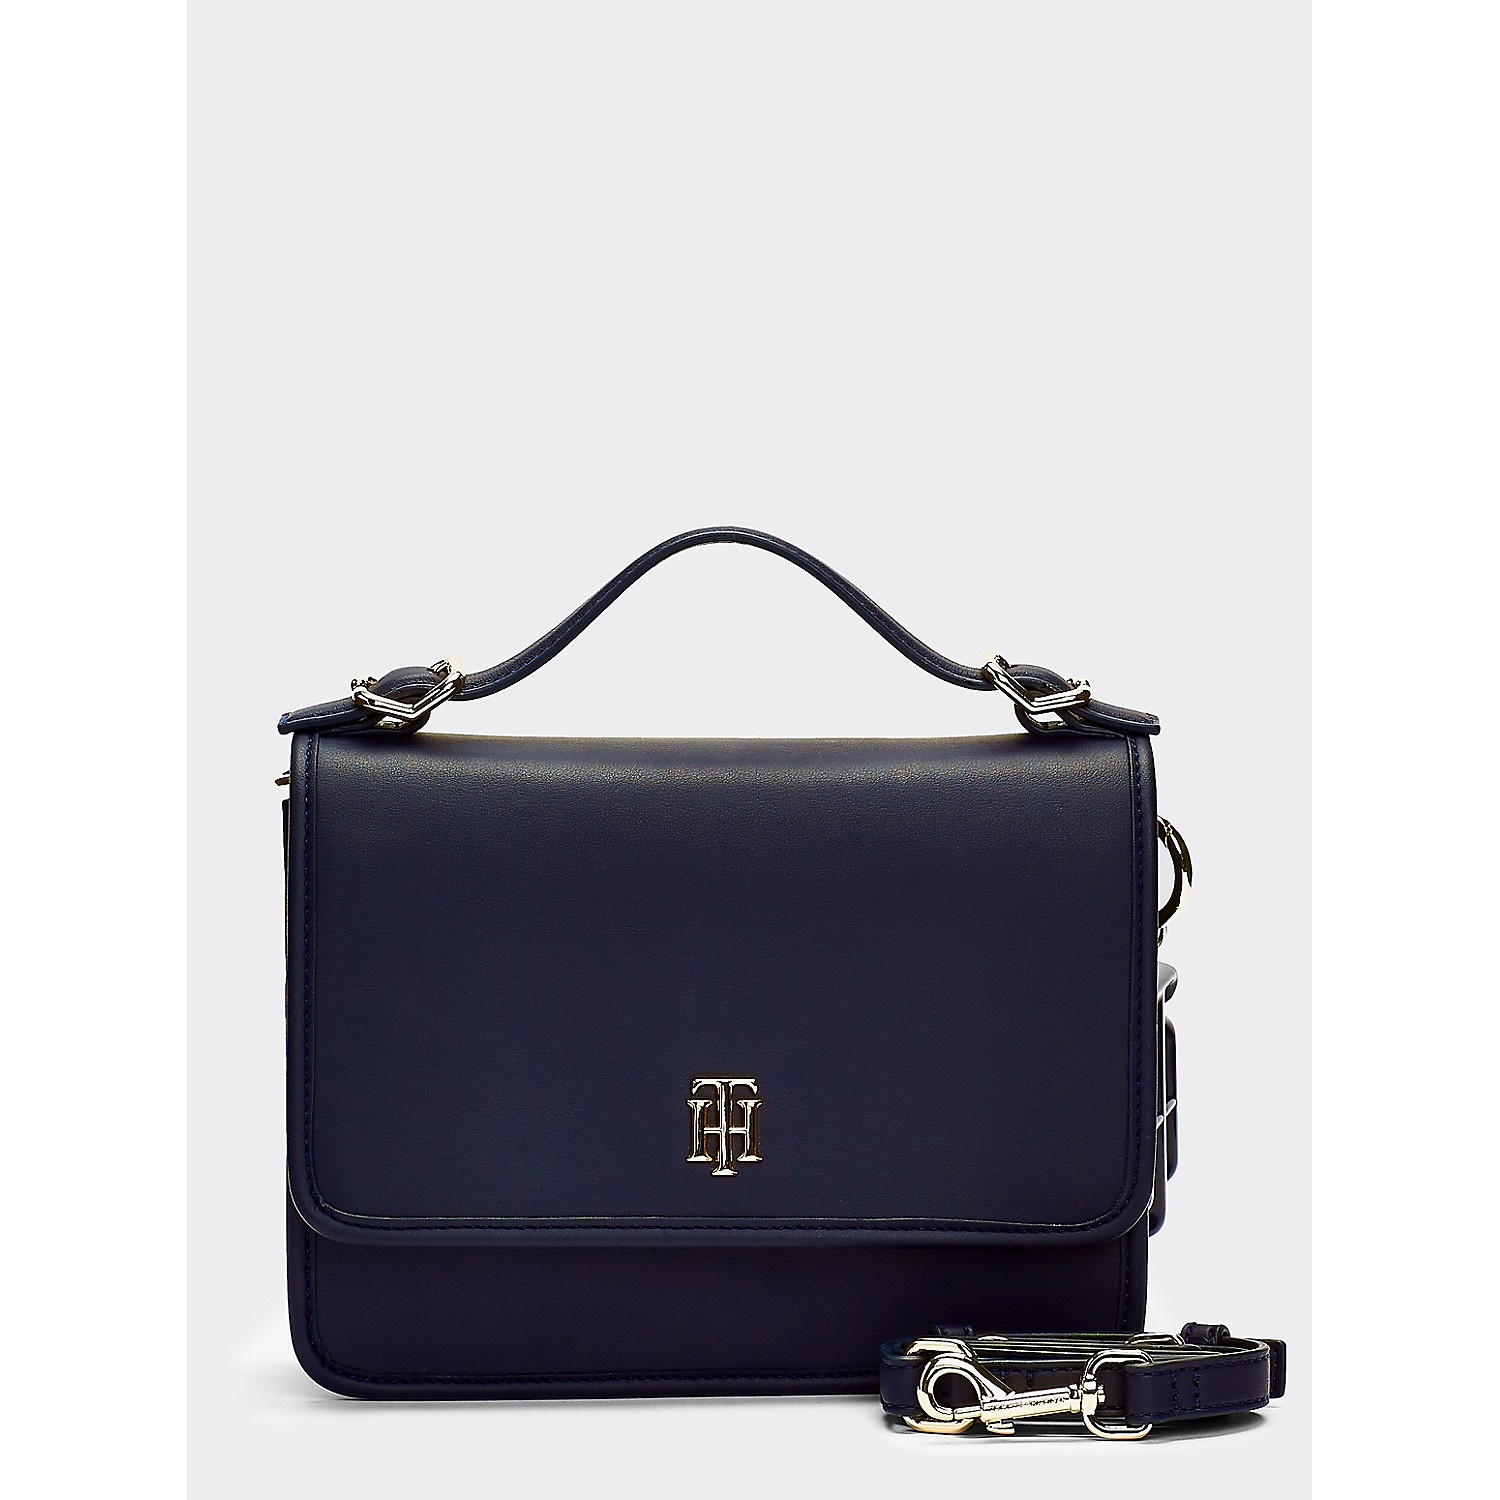 Tommy hilfiger TH Charm Crossbody